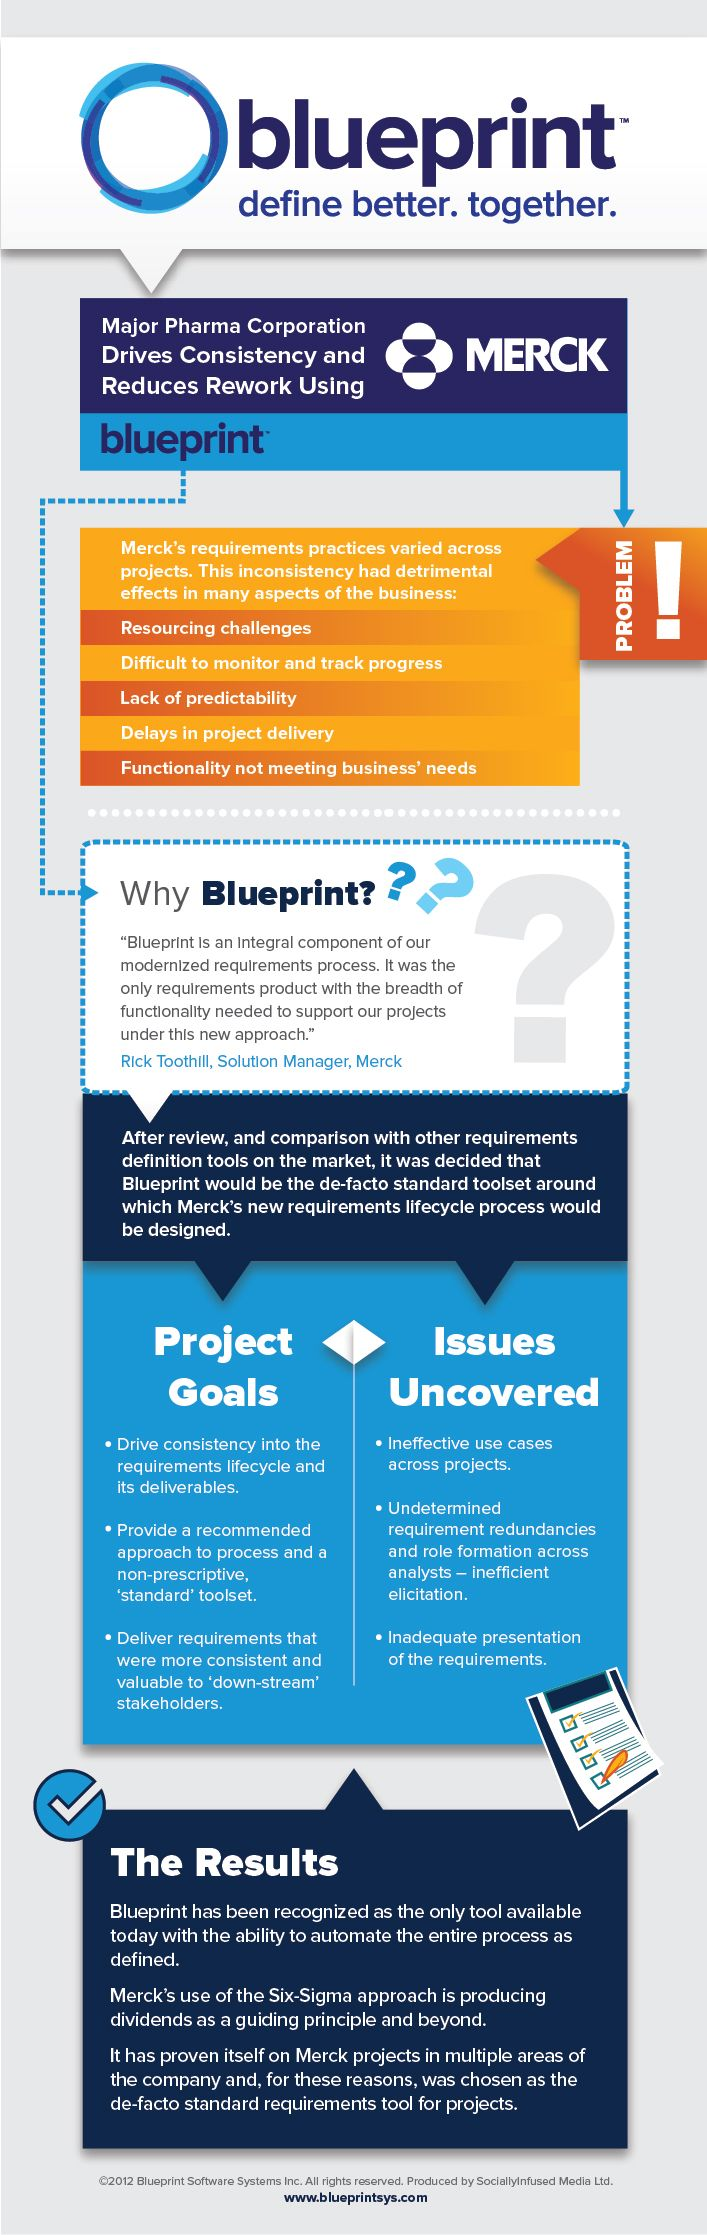 9 best infographics images on pinterest info graphics infographic merck drives consistency and reduces rework using blueprint blueprint malvernweather